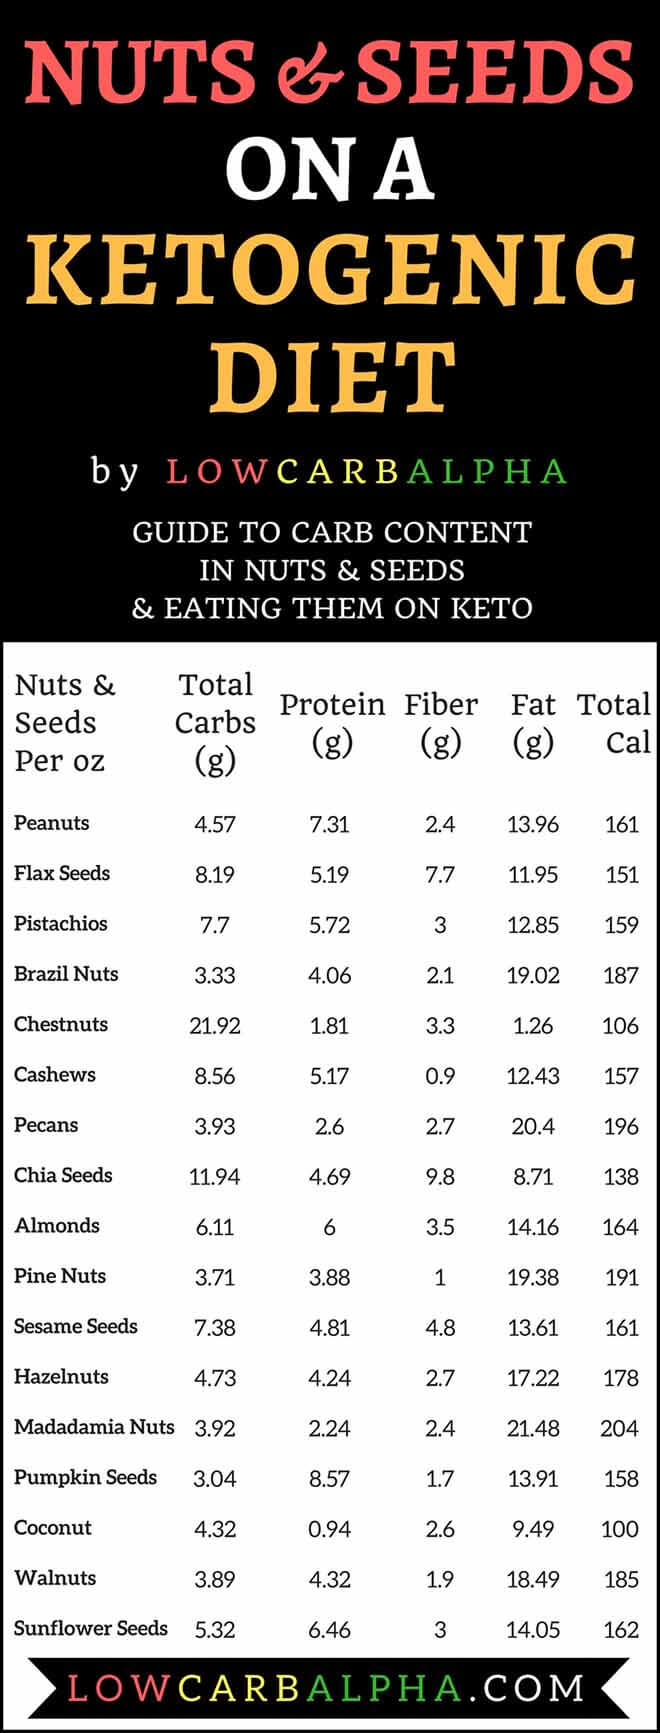 Guide to Carb Content in Nuts and Seeds on a keto diet #lowcarb #keto #LCHF #lowcarbalpha